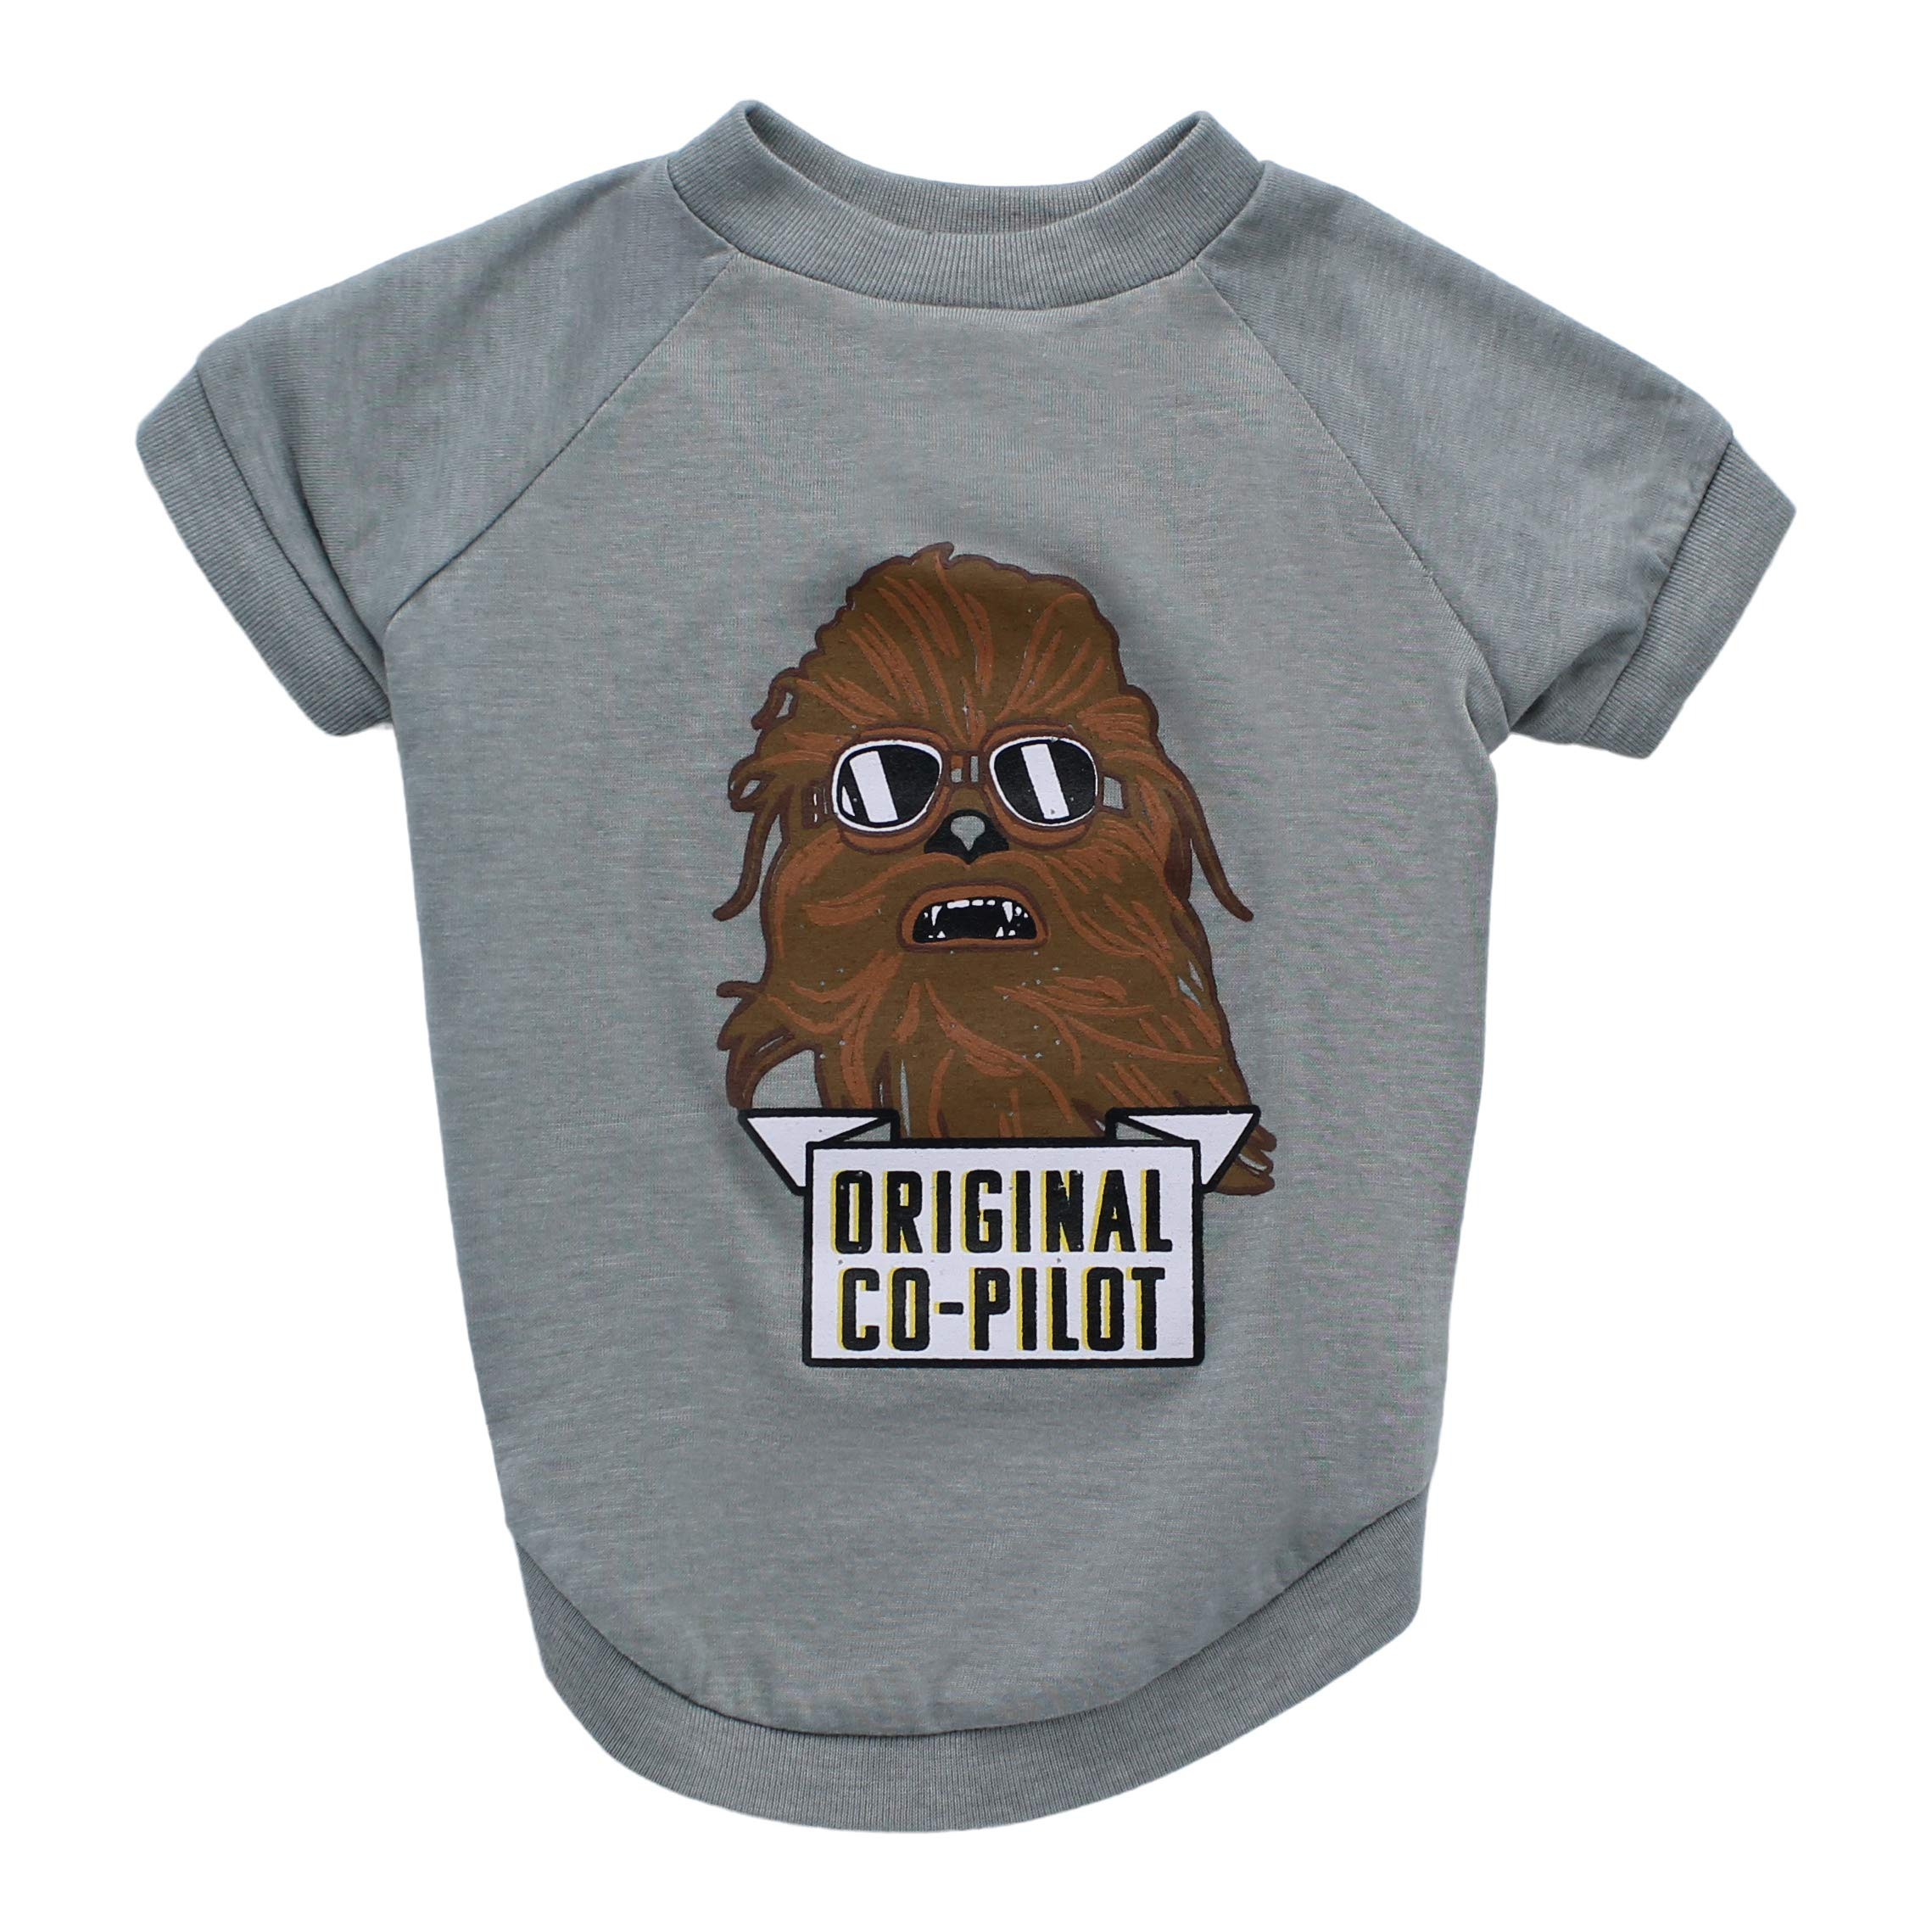 Star Wars Chewbacca Original Co-Pilot Dog Tee | Star Wars Dog Shirt for Small Dogs | X-Small by Star Wars for Pets